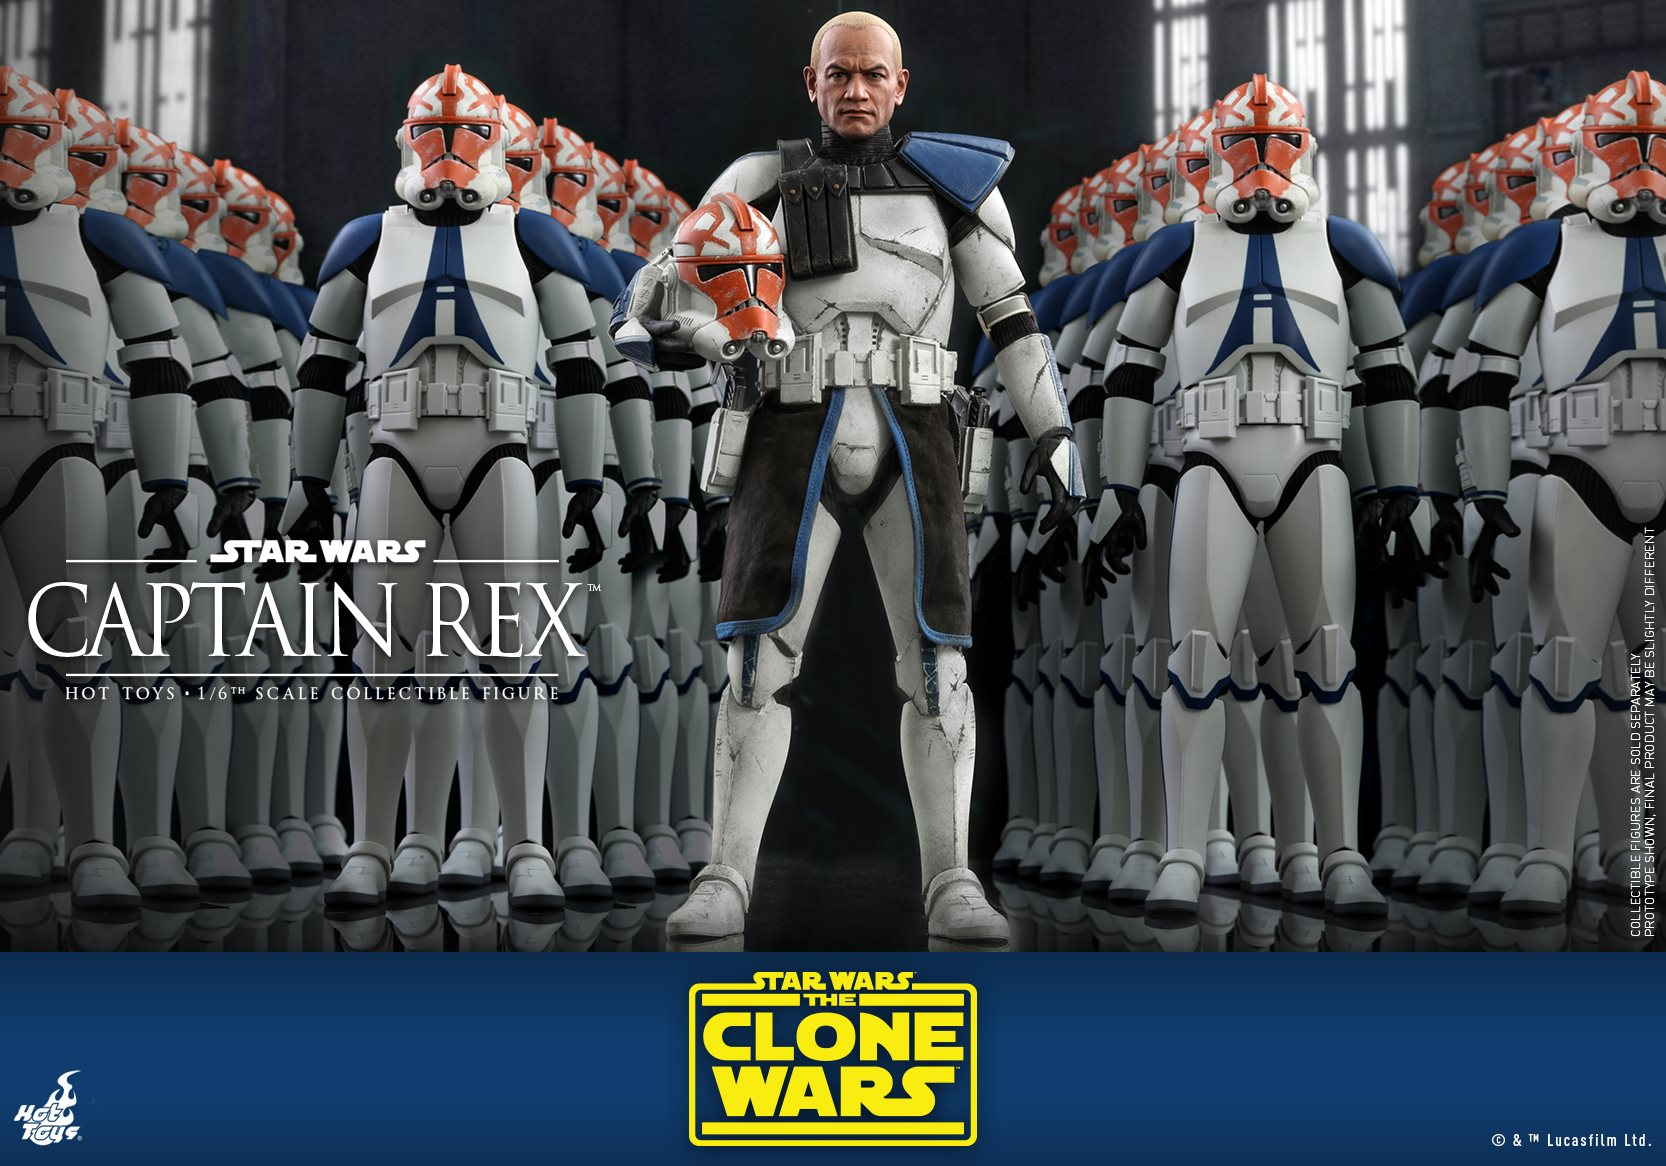 Pre-Order Hot Toys Star Wars Captain Rex Sixth Scale Figure